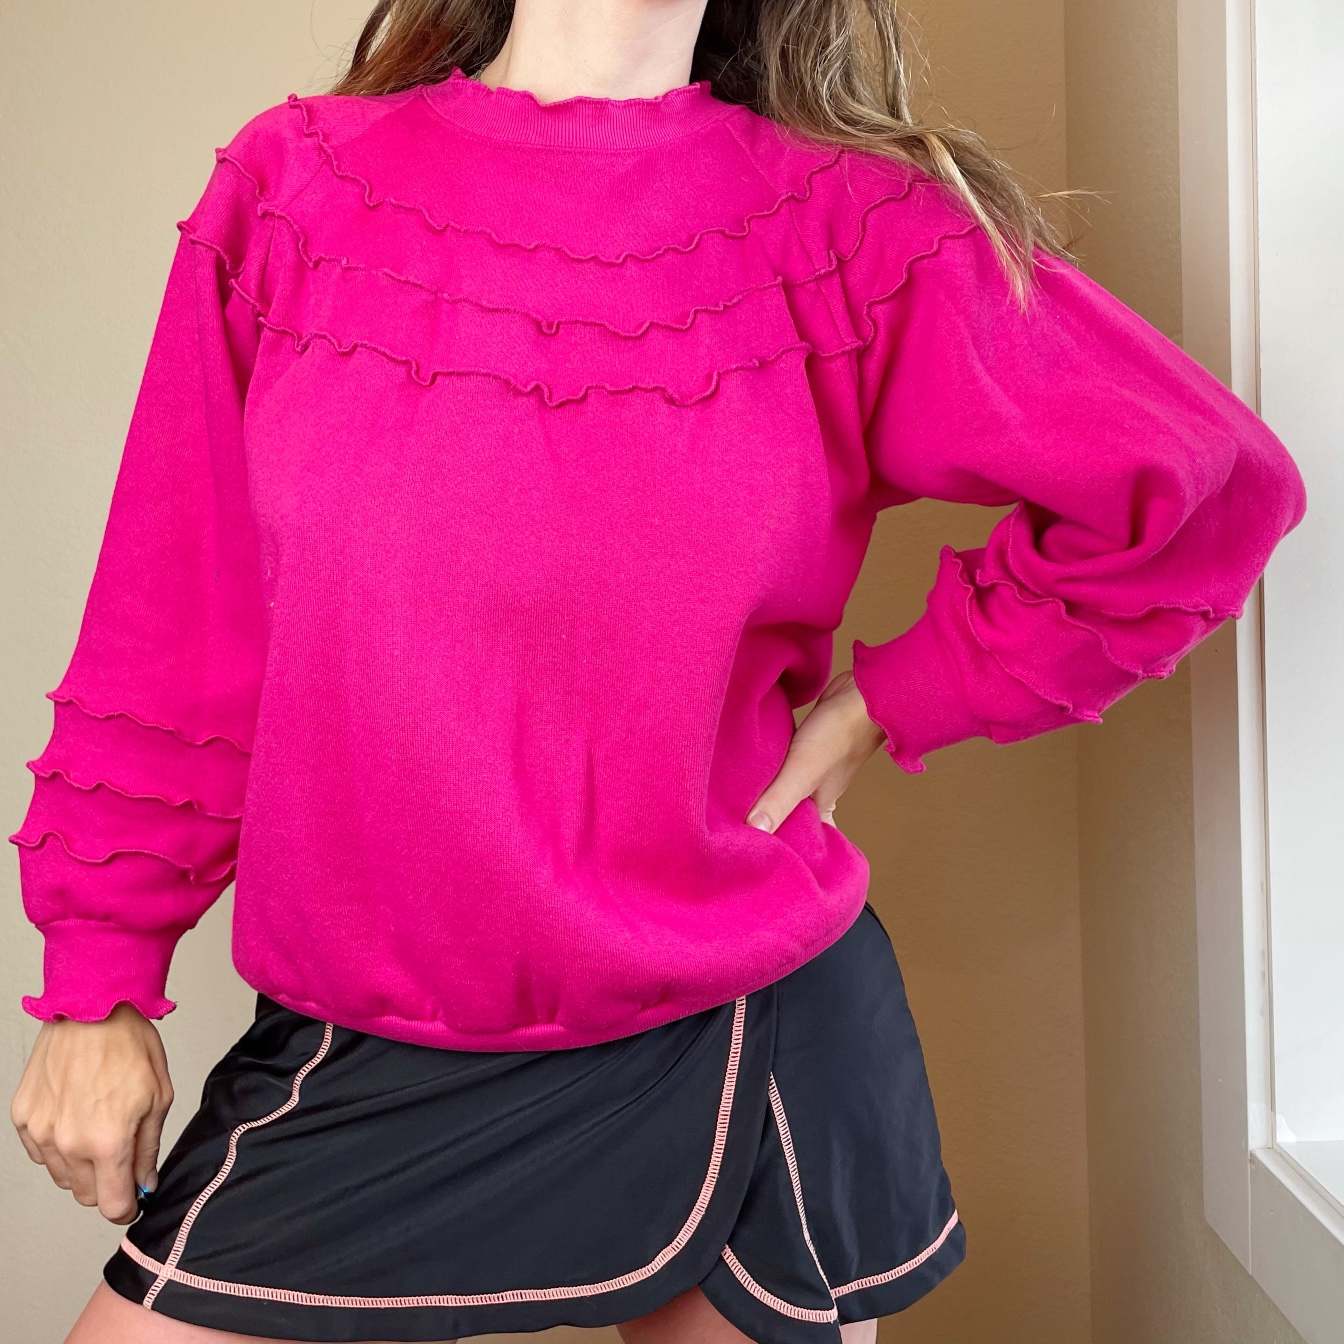 Product Image 1 - Pink ruffled sweatshirt with a